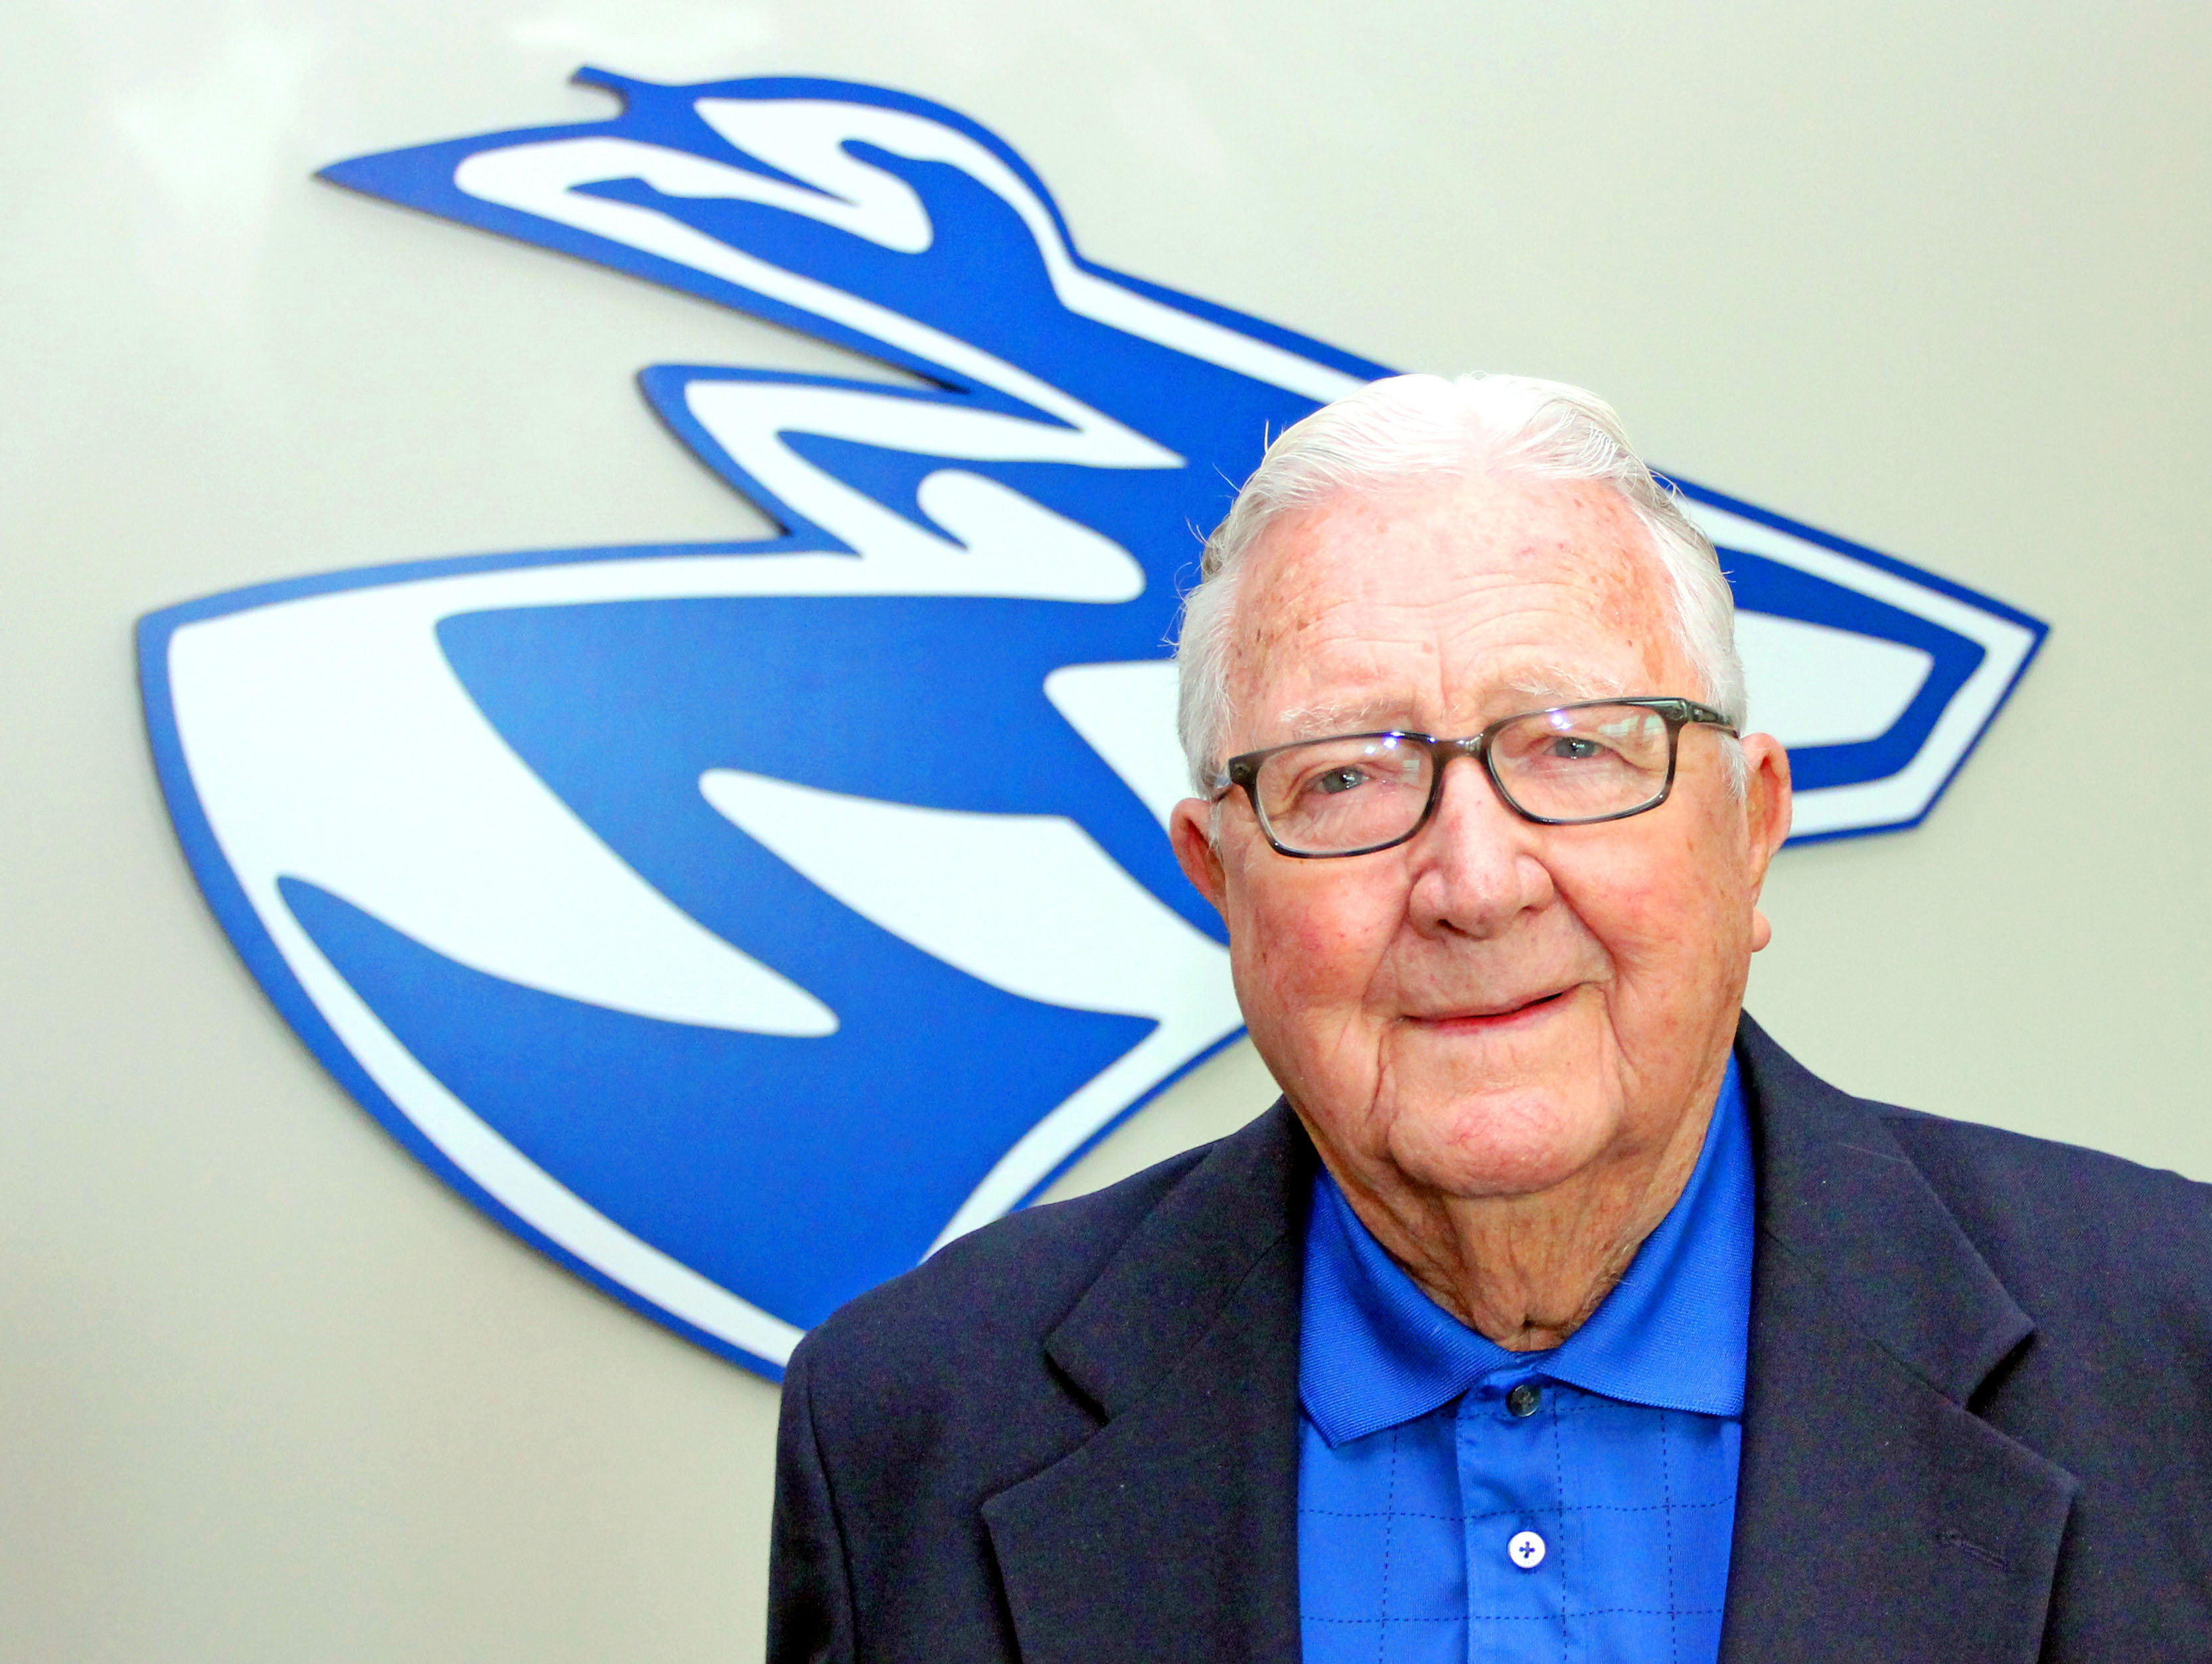 Longtime Kearney businessmen Bob Sahling has given $1.2 million to the University of Nebraska Foundation. The money will be used to provide scholarships to undergraduate students as well as student-athletes on the Loper football team. (Photo by Todd Gottula/UNK News)